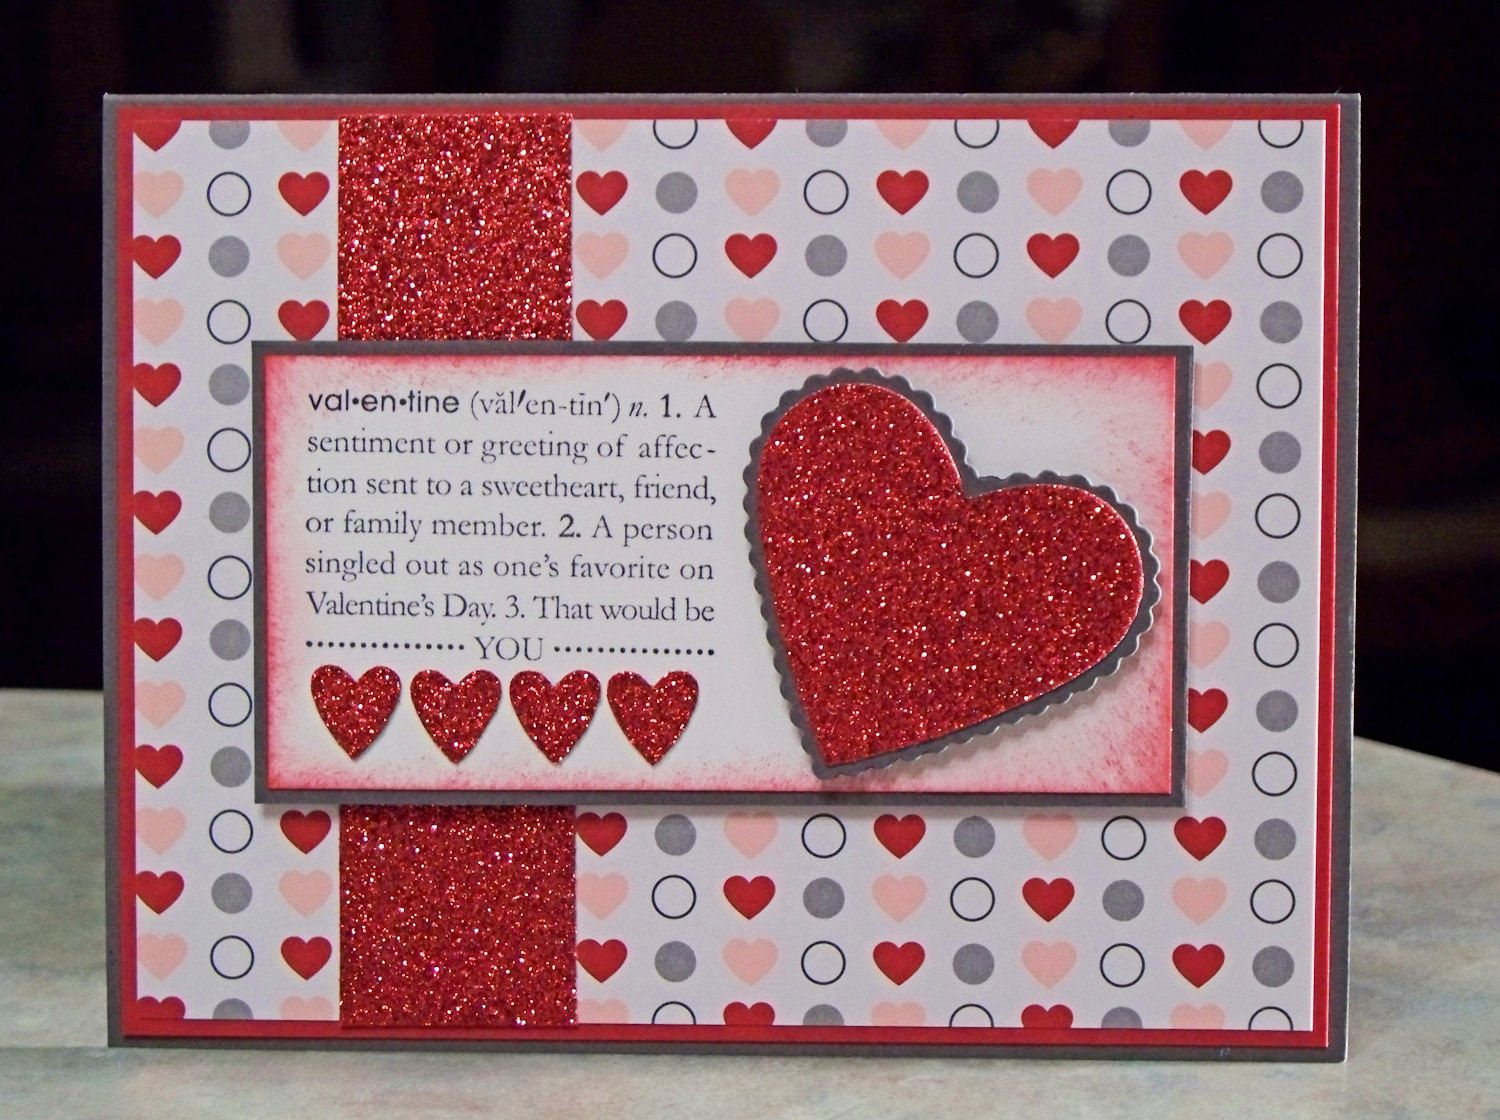 Handmade Valentines Day Card using Stampin Up Scallop Heart – Homemade Valentine Card